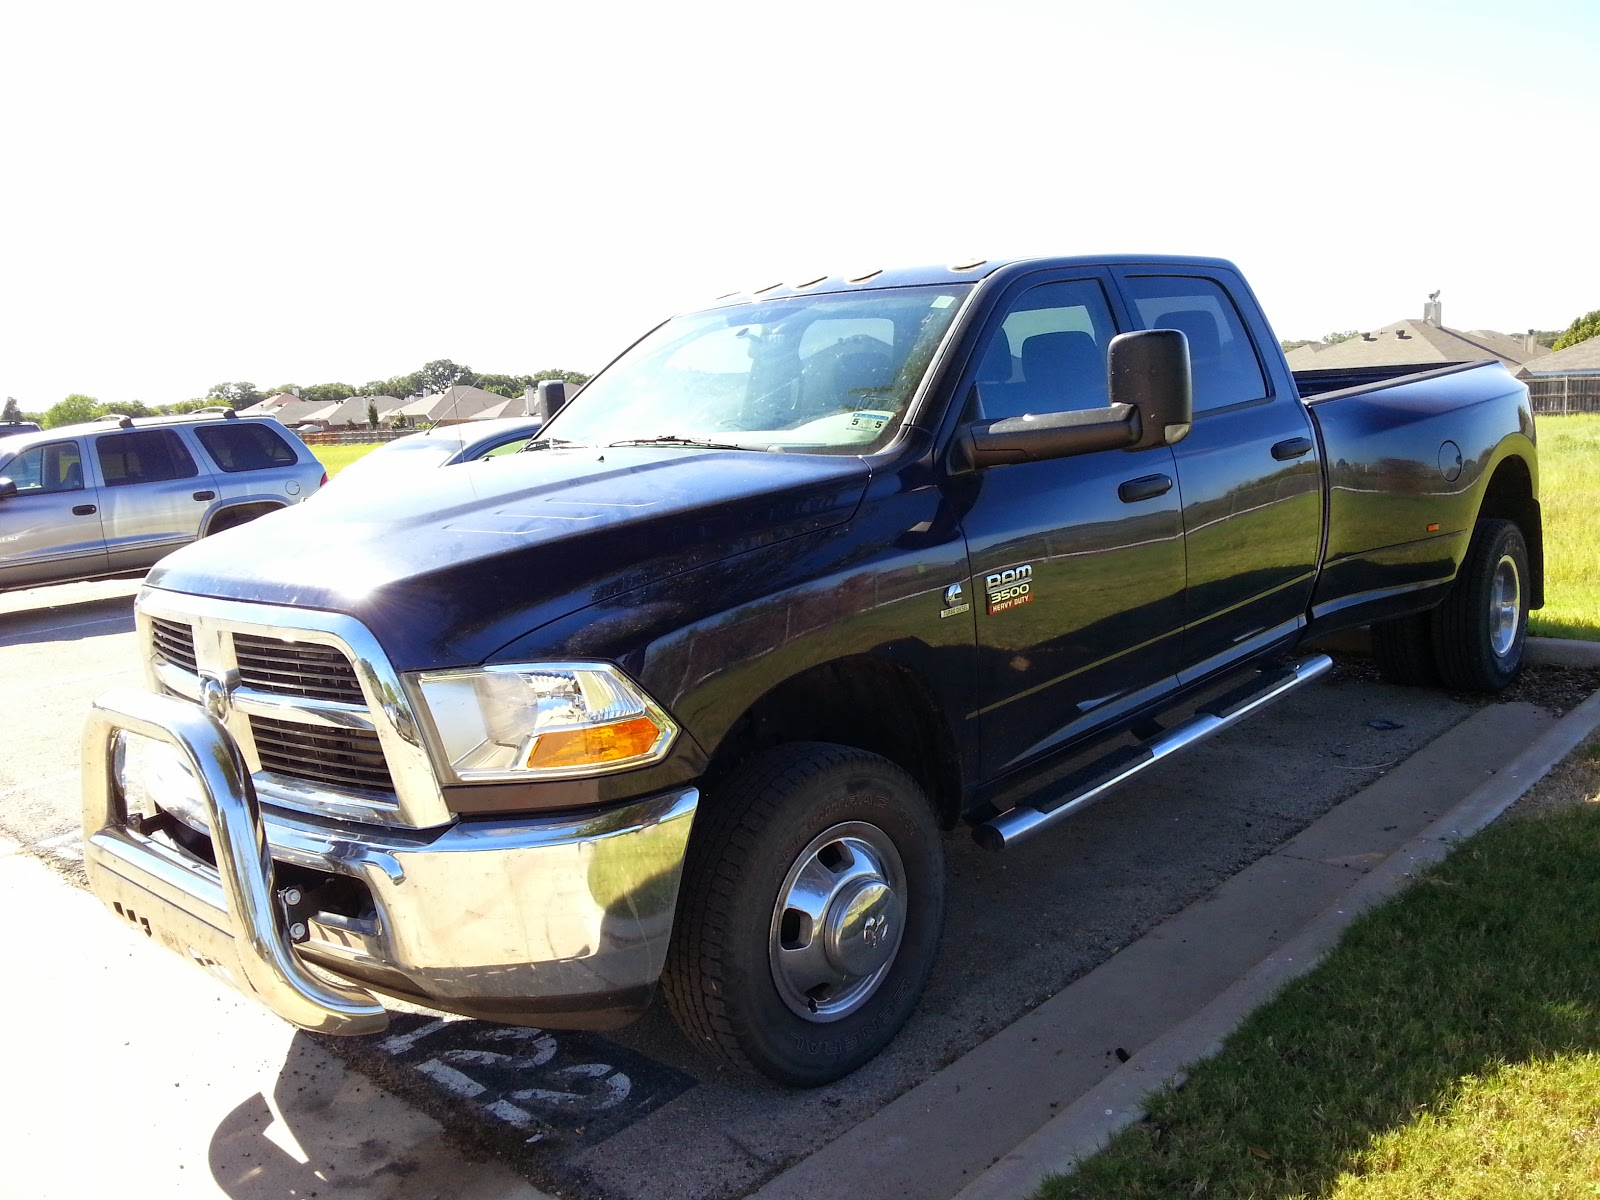 35 991 for sale blue 2012 ram 3500 crew cab 4x4 cummins diesel tdy sales new lifted truck suv. Black Bedroom Furniture Sets. Home Design Ideas